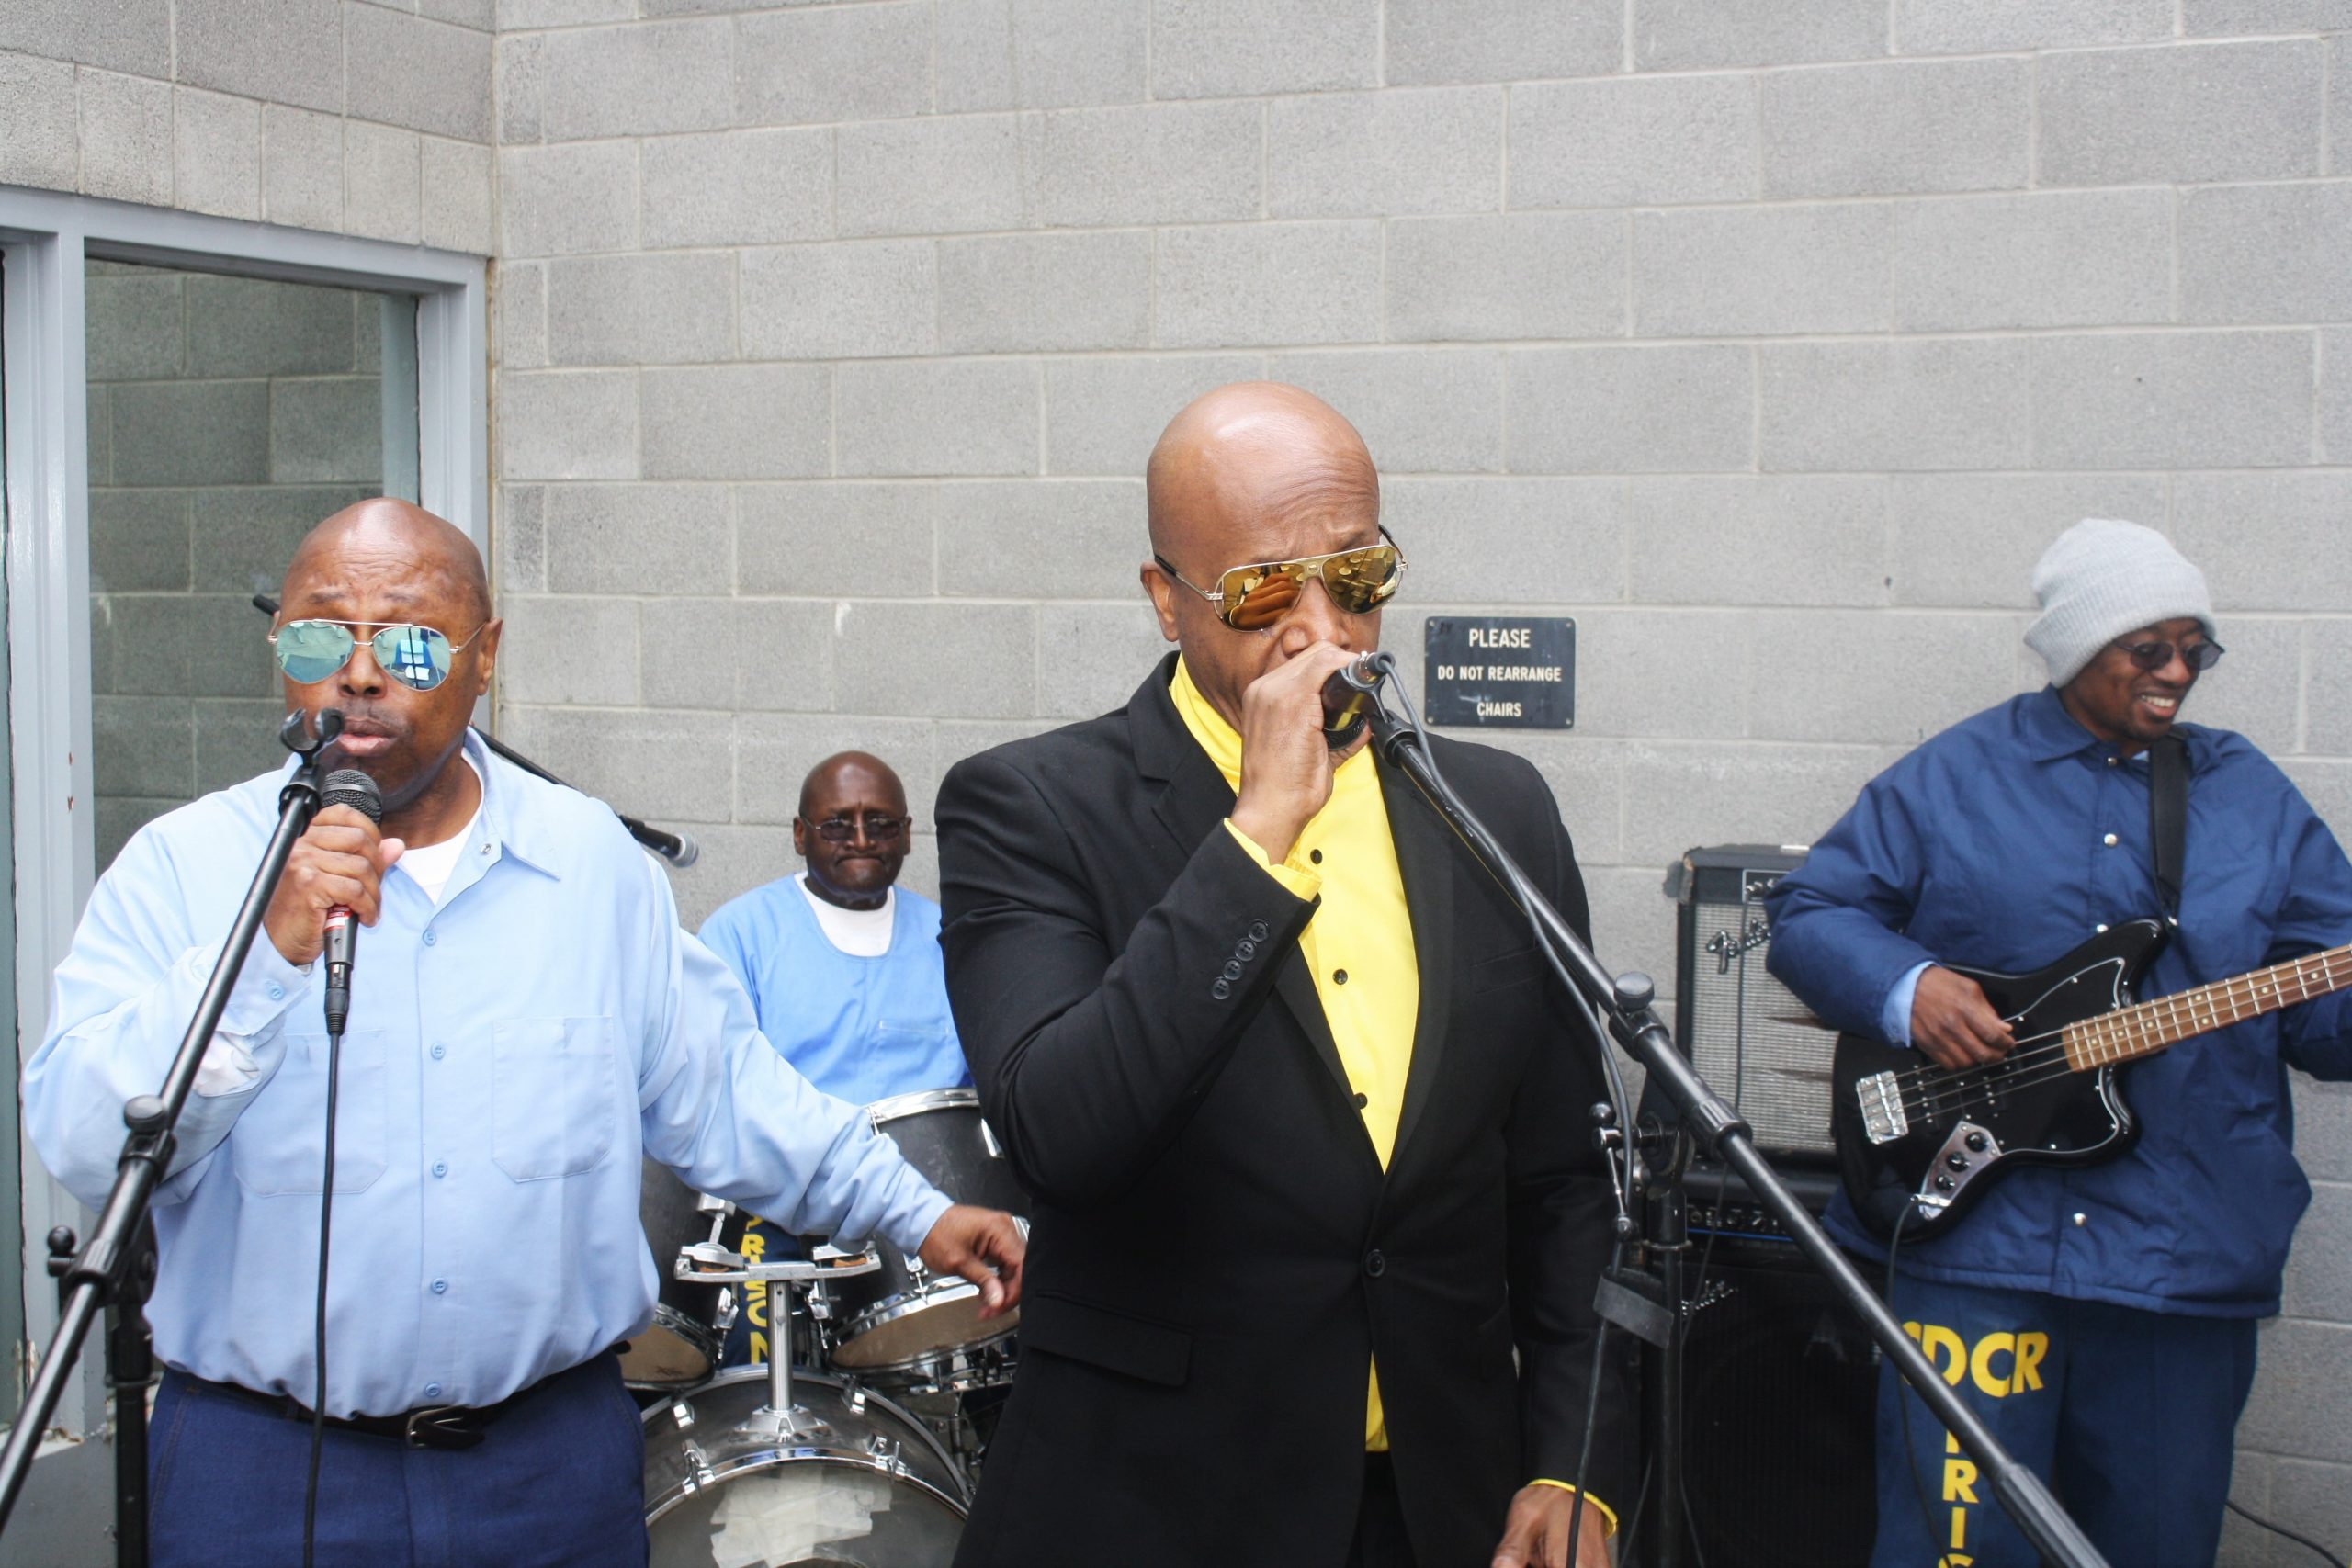 Singer MC Hammer sings into a microphone with inmates play instruments and sing backup.